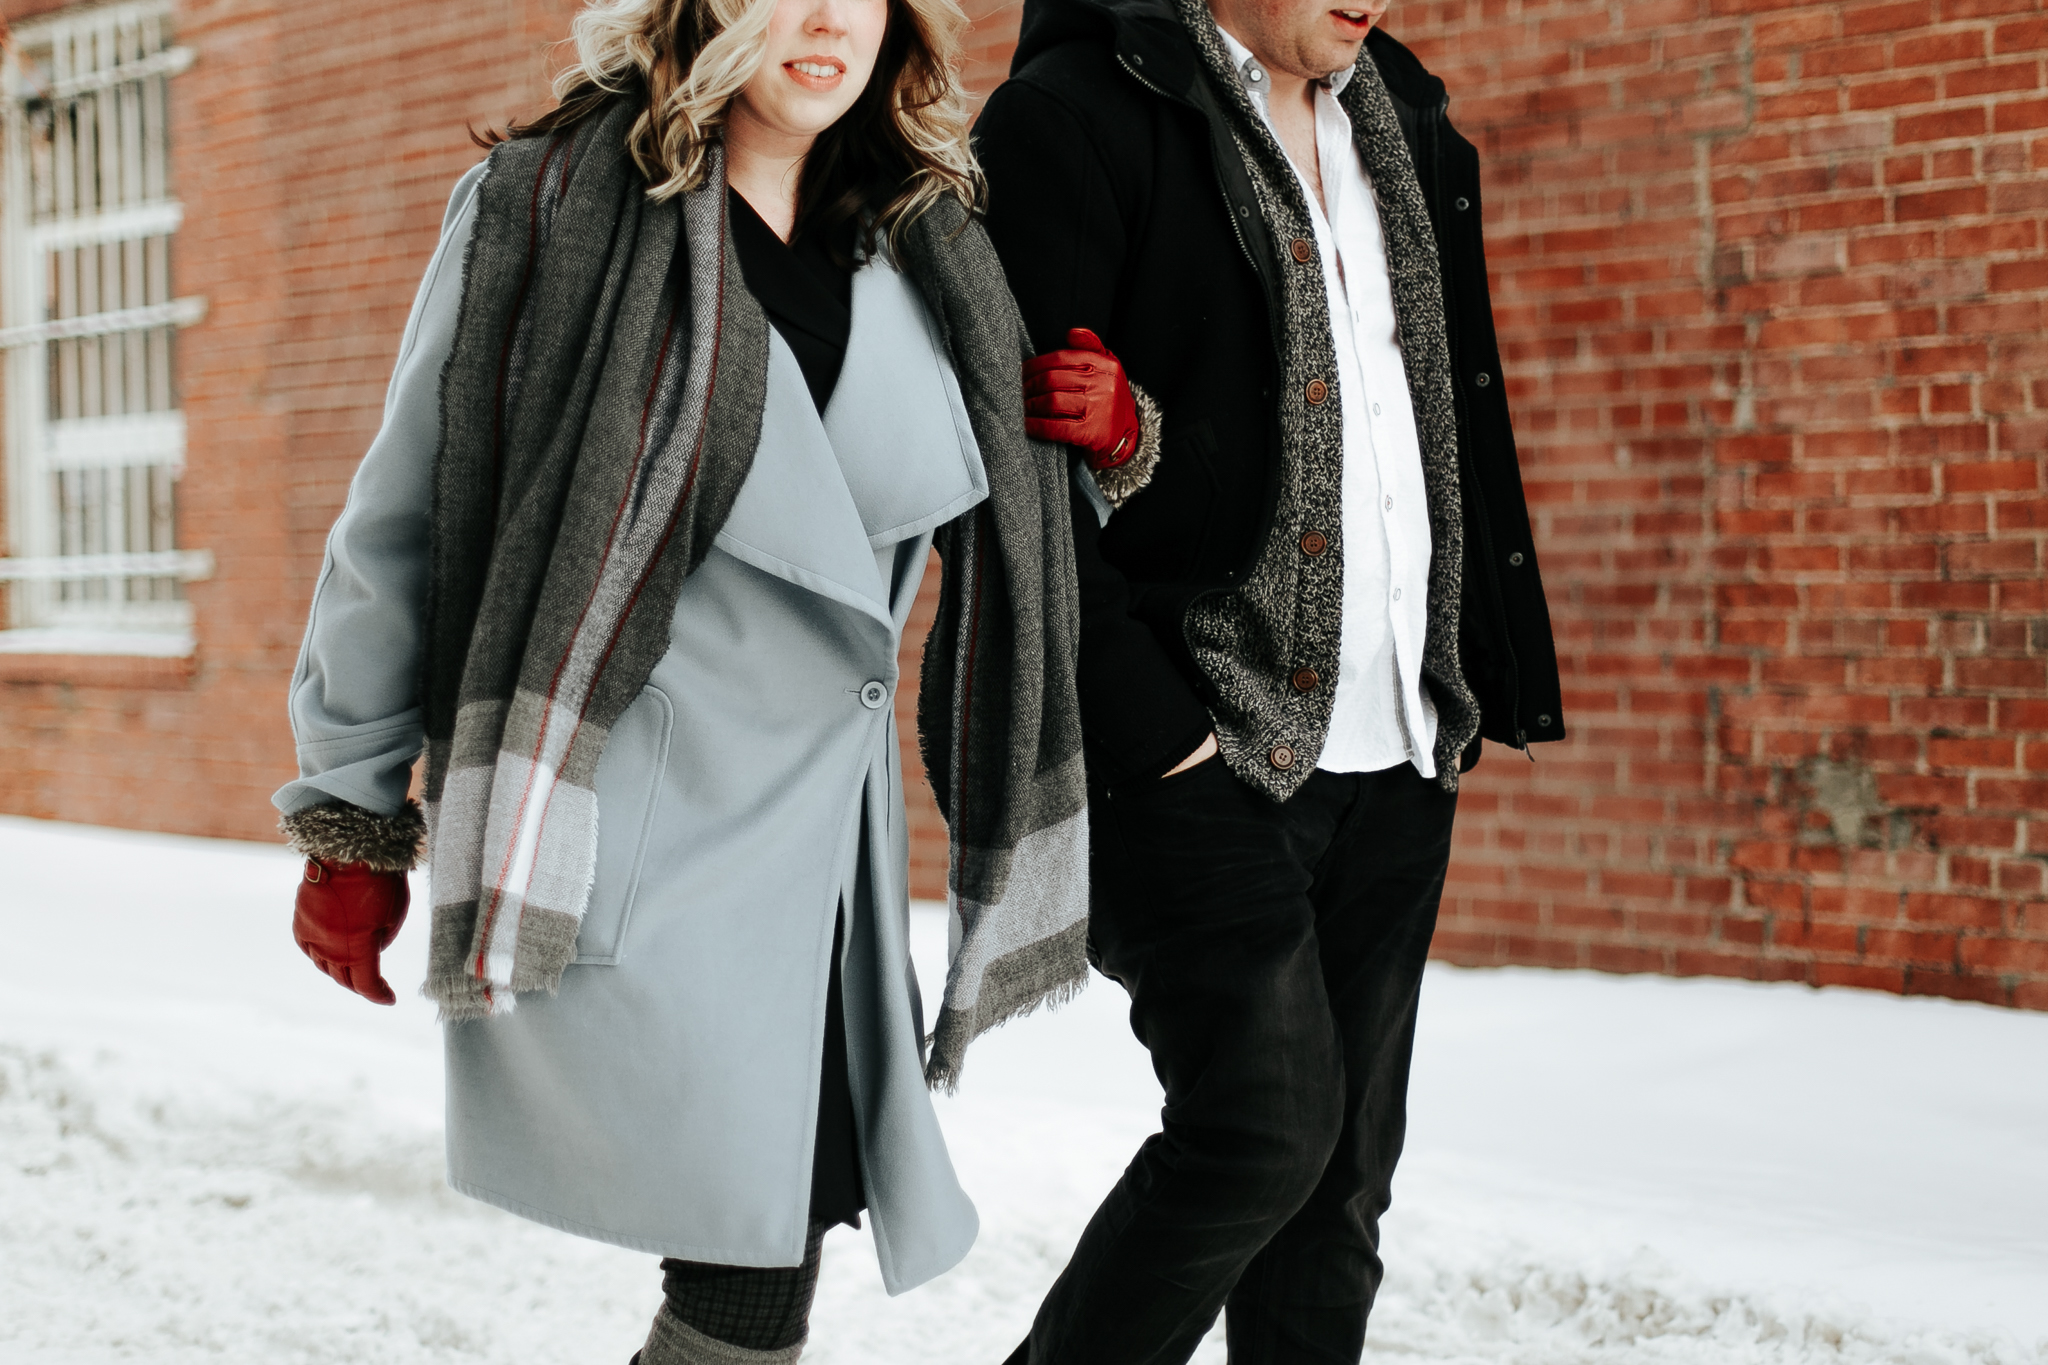 lethbridge-photographer-love-and-be-loved-photography-brandon-danielle-winter-engagement-downtown-yql-picture-image-photo-44.jpg